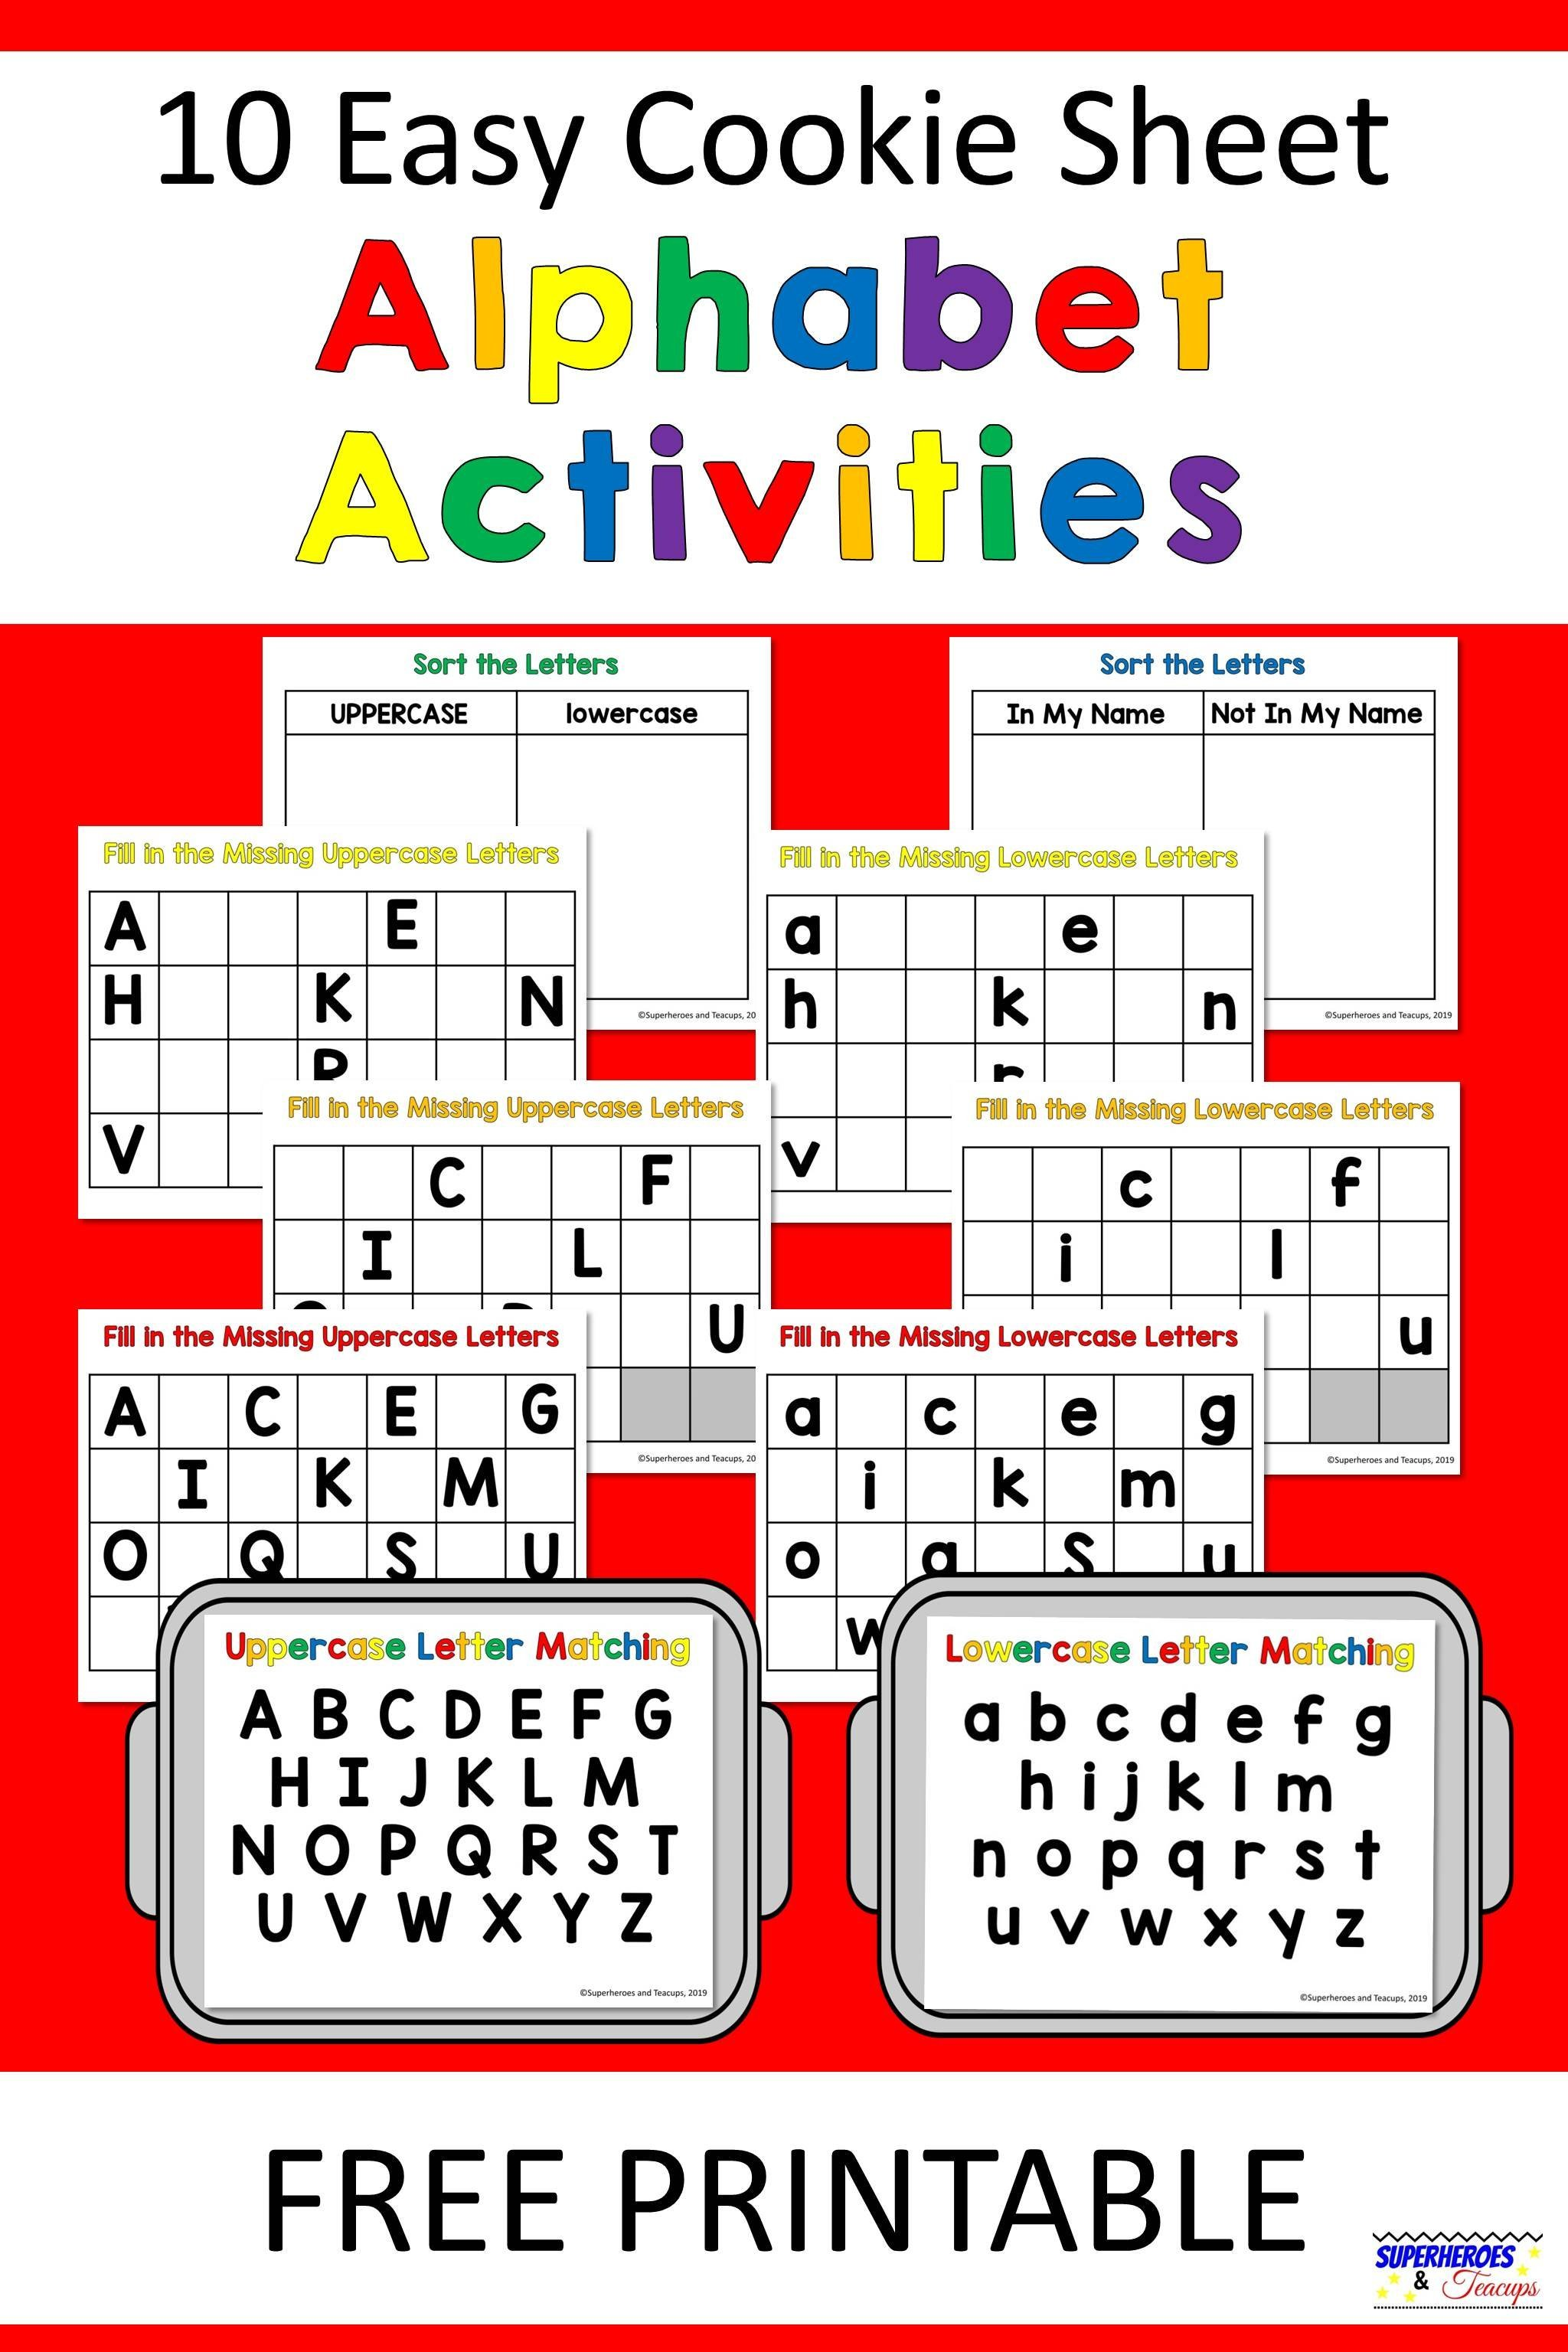 graphic about Free Printable Lower Case Letters referred to as 10 Simple Cookie Sheet Alphabet Functions No cost Printable for Small children